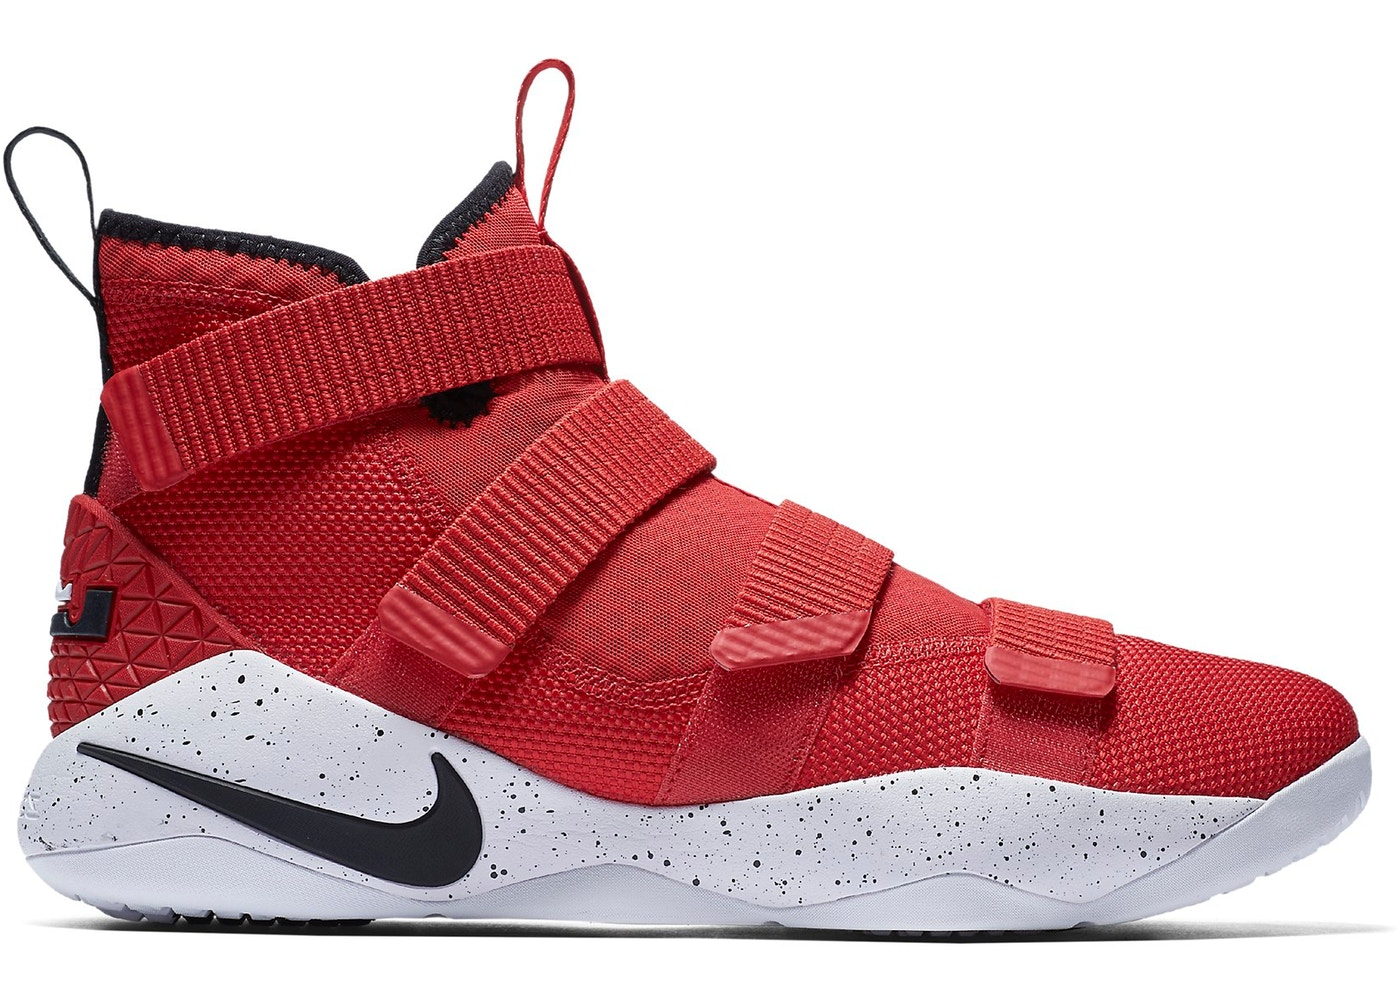 991d180d97e LeBron Zoom Soldier 11 University Red White - 897644-601